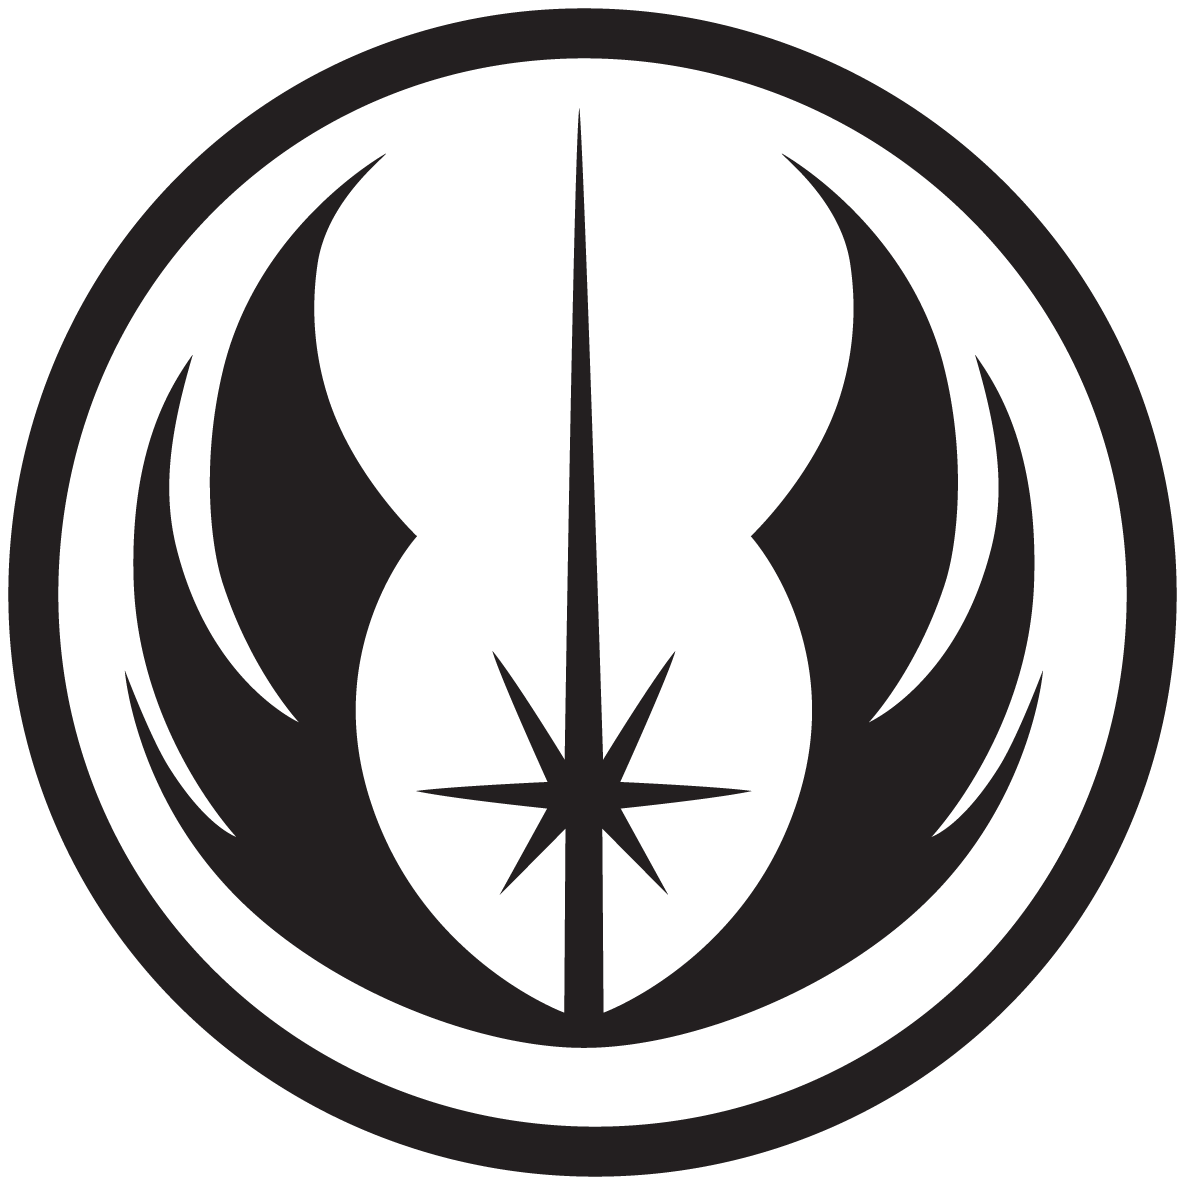 Star wars rebel symbol clipart vector download New Jedi Order by ChupaCabraThing.deviantart.com on @DeviantArt ... vector download